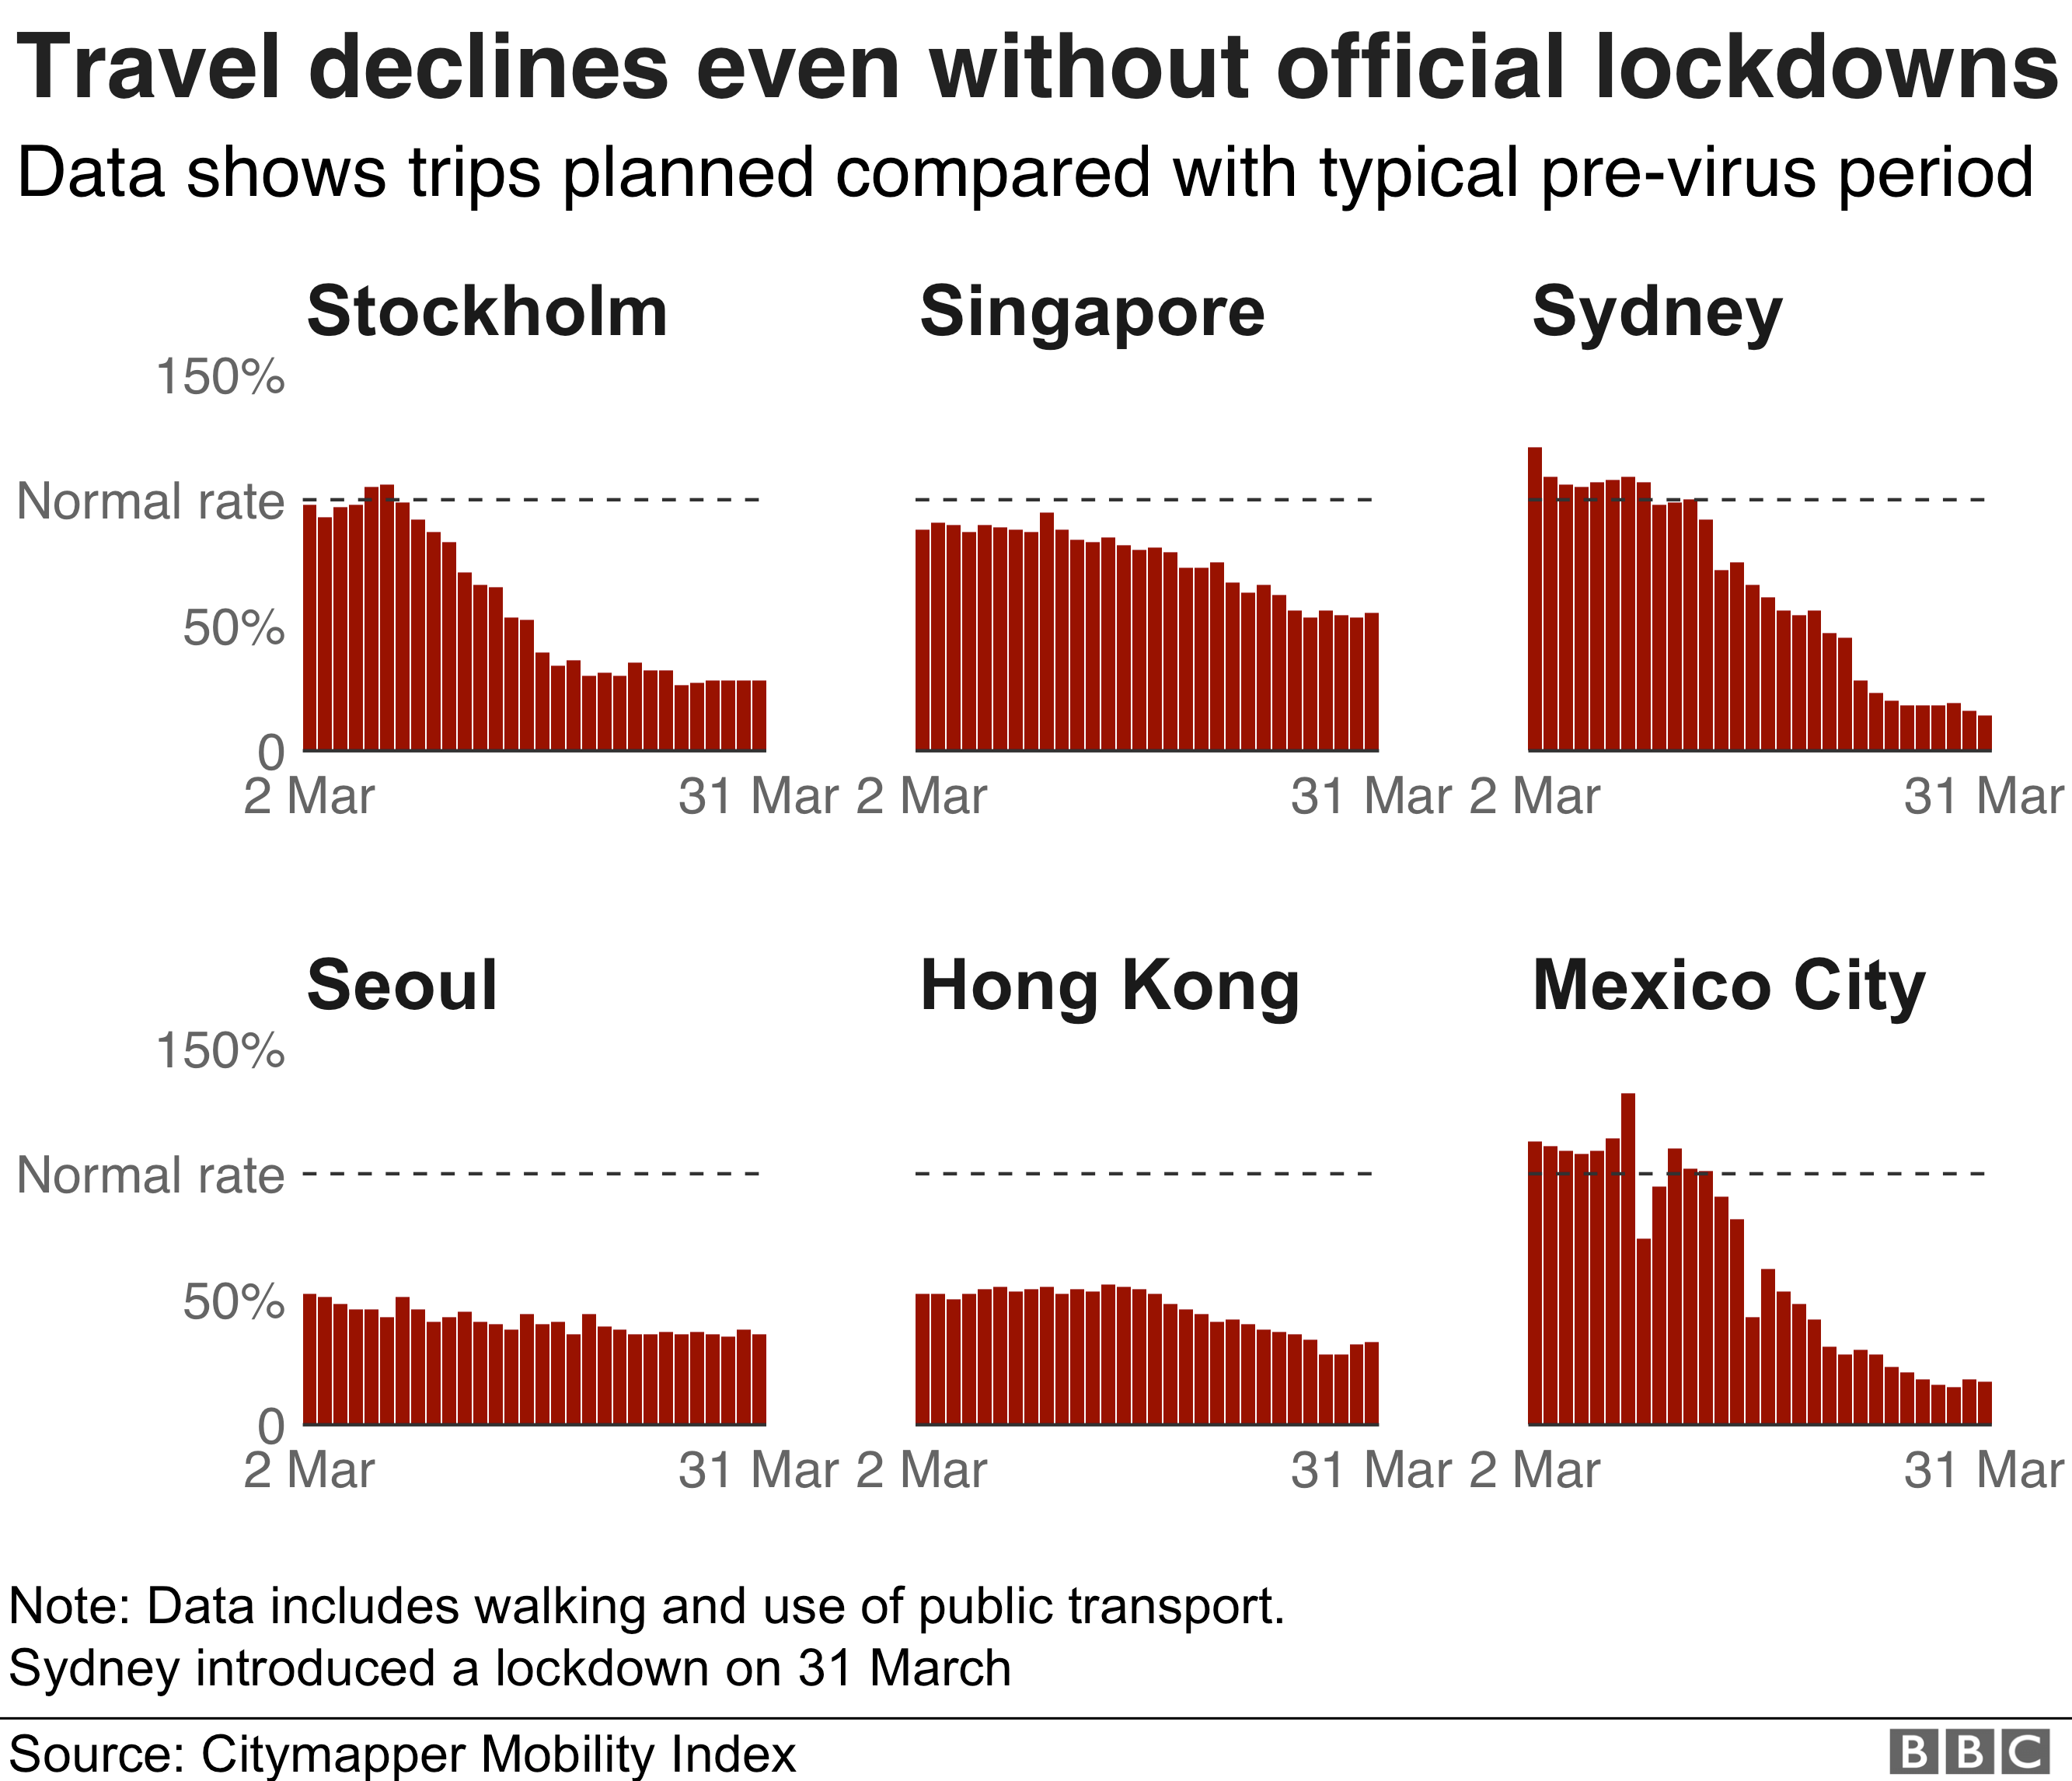 Chart showing data from travel app Citymapper on how cities without an official government enforced lockdown have reduced travel